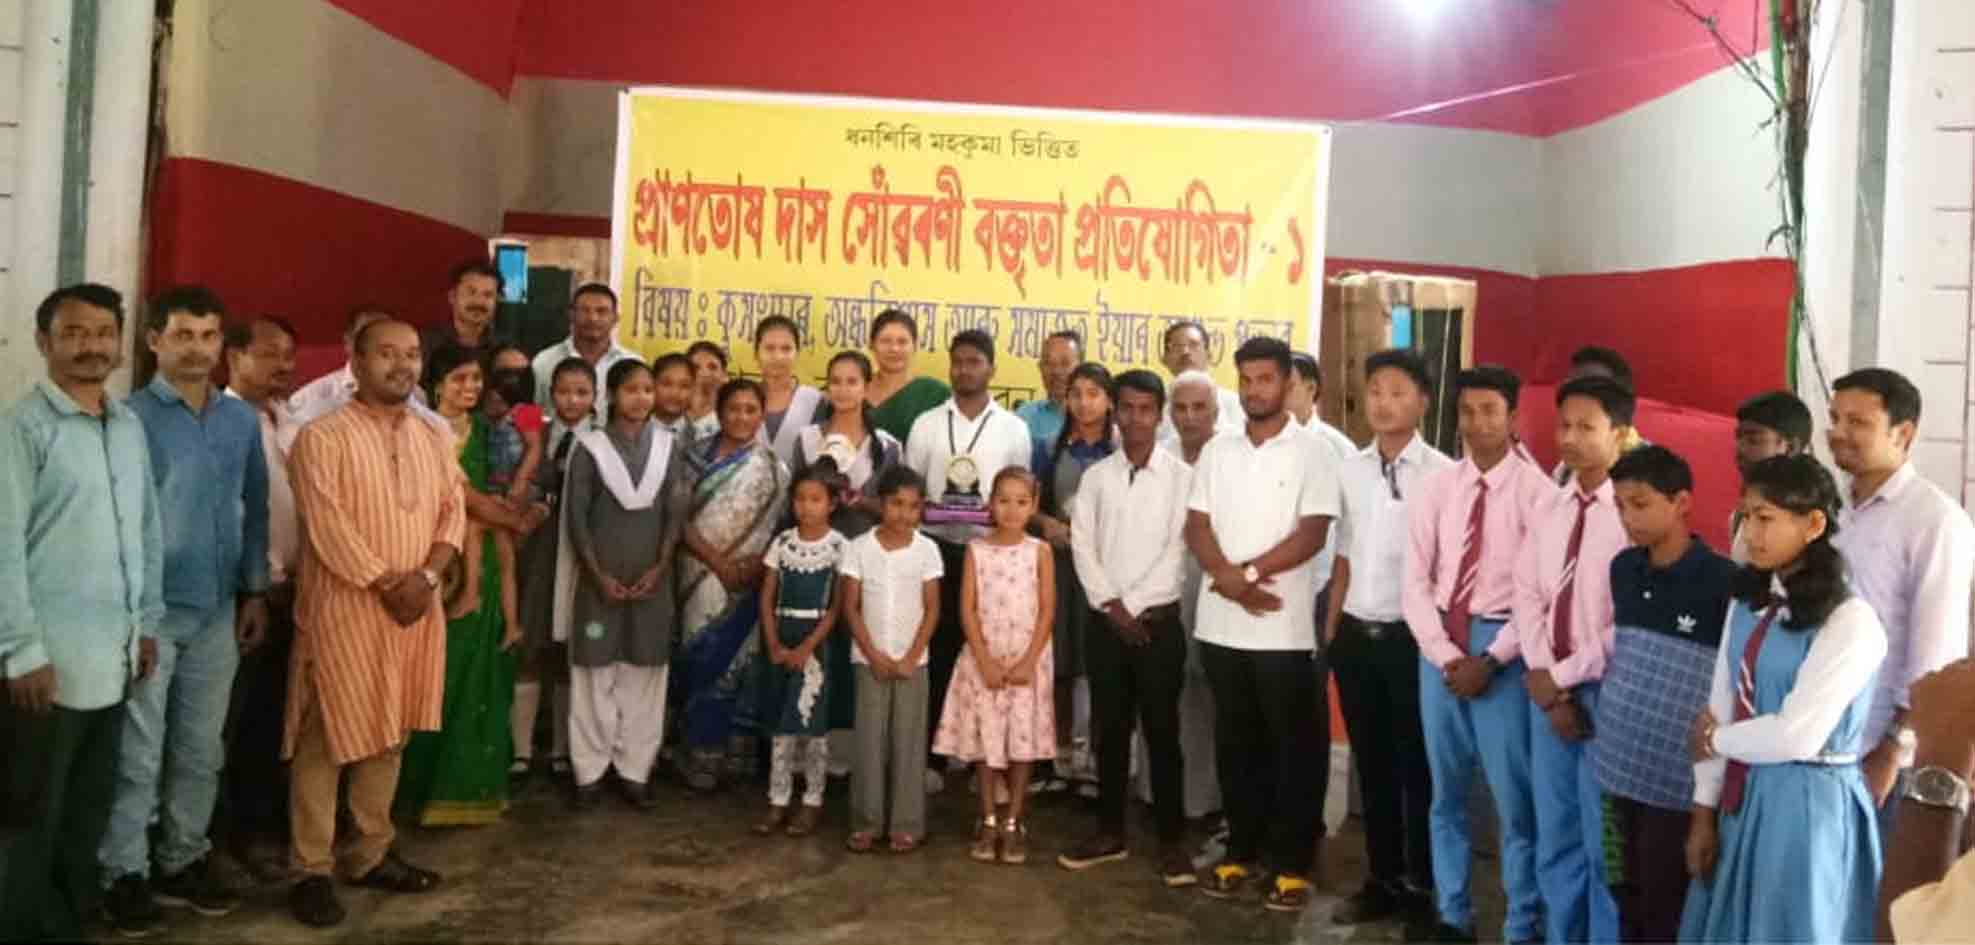 Speech competition among students held, Sarupathar